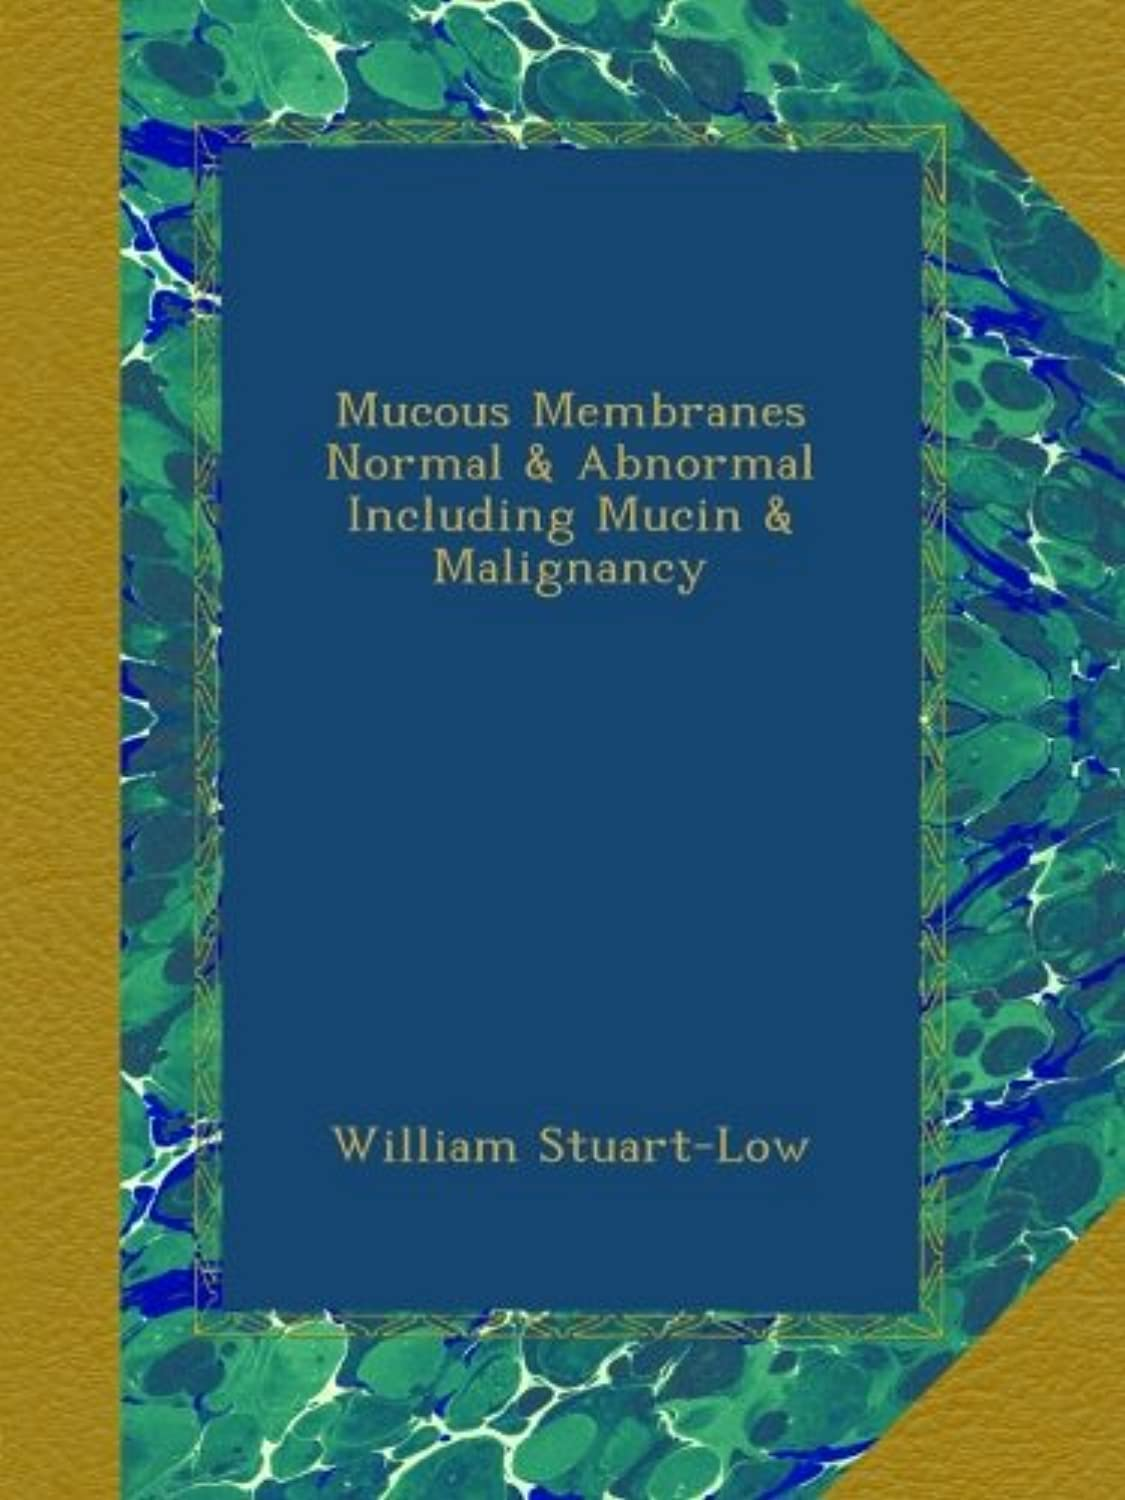 Mucous Membranes Normal & Abnormal Including Mucin & Malignancy